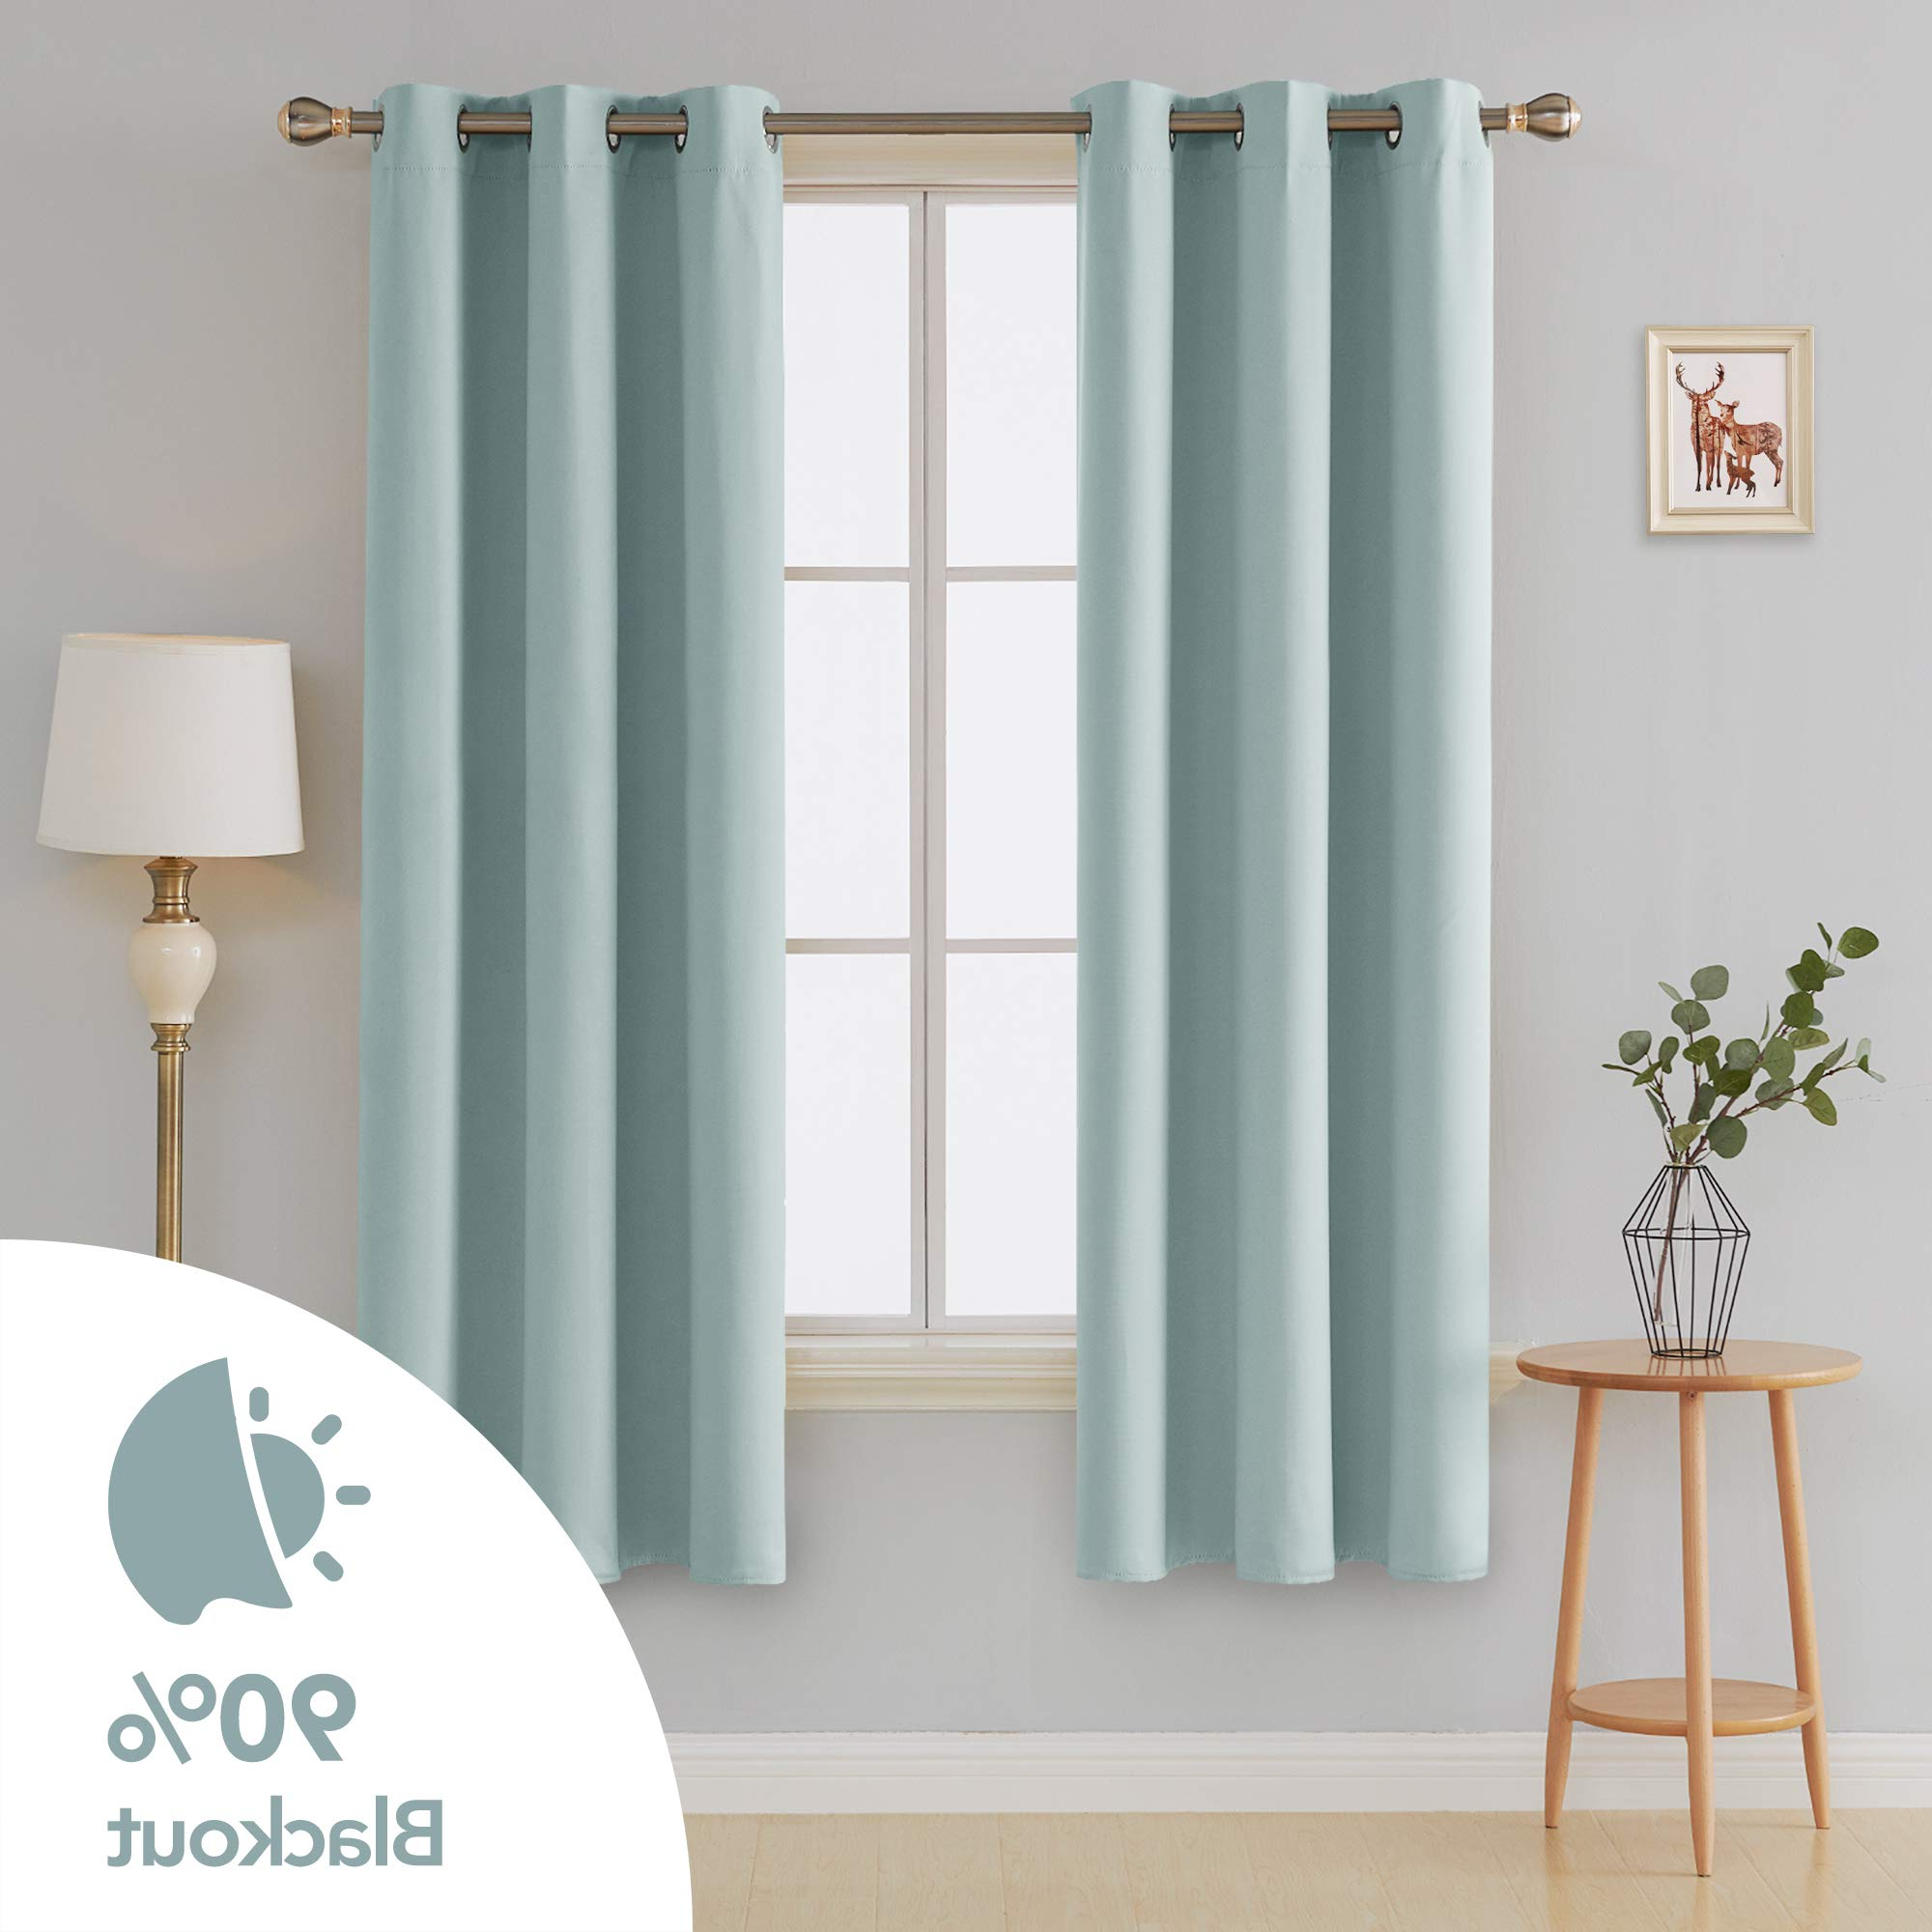 Most Current Deconovo Room Darkening Thermal Insulated Blackout Grommet Window Curtain Panel For Bedroom Room Skyblue 42X84 Inch 1 Pair Inside Insulated Blackout Grommet Window Curtain Panel Pairs (Gallery 13 of 20)